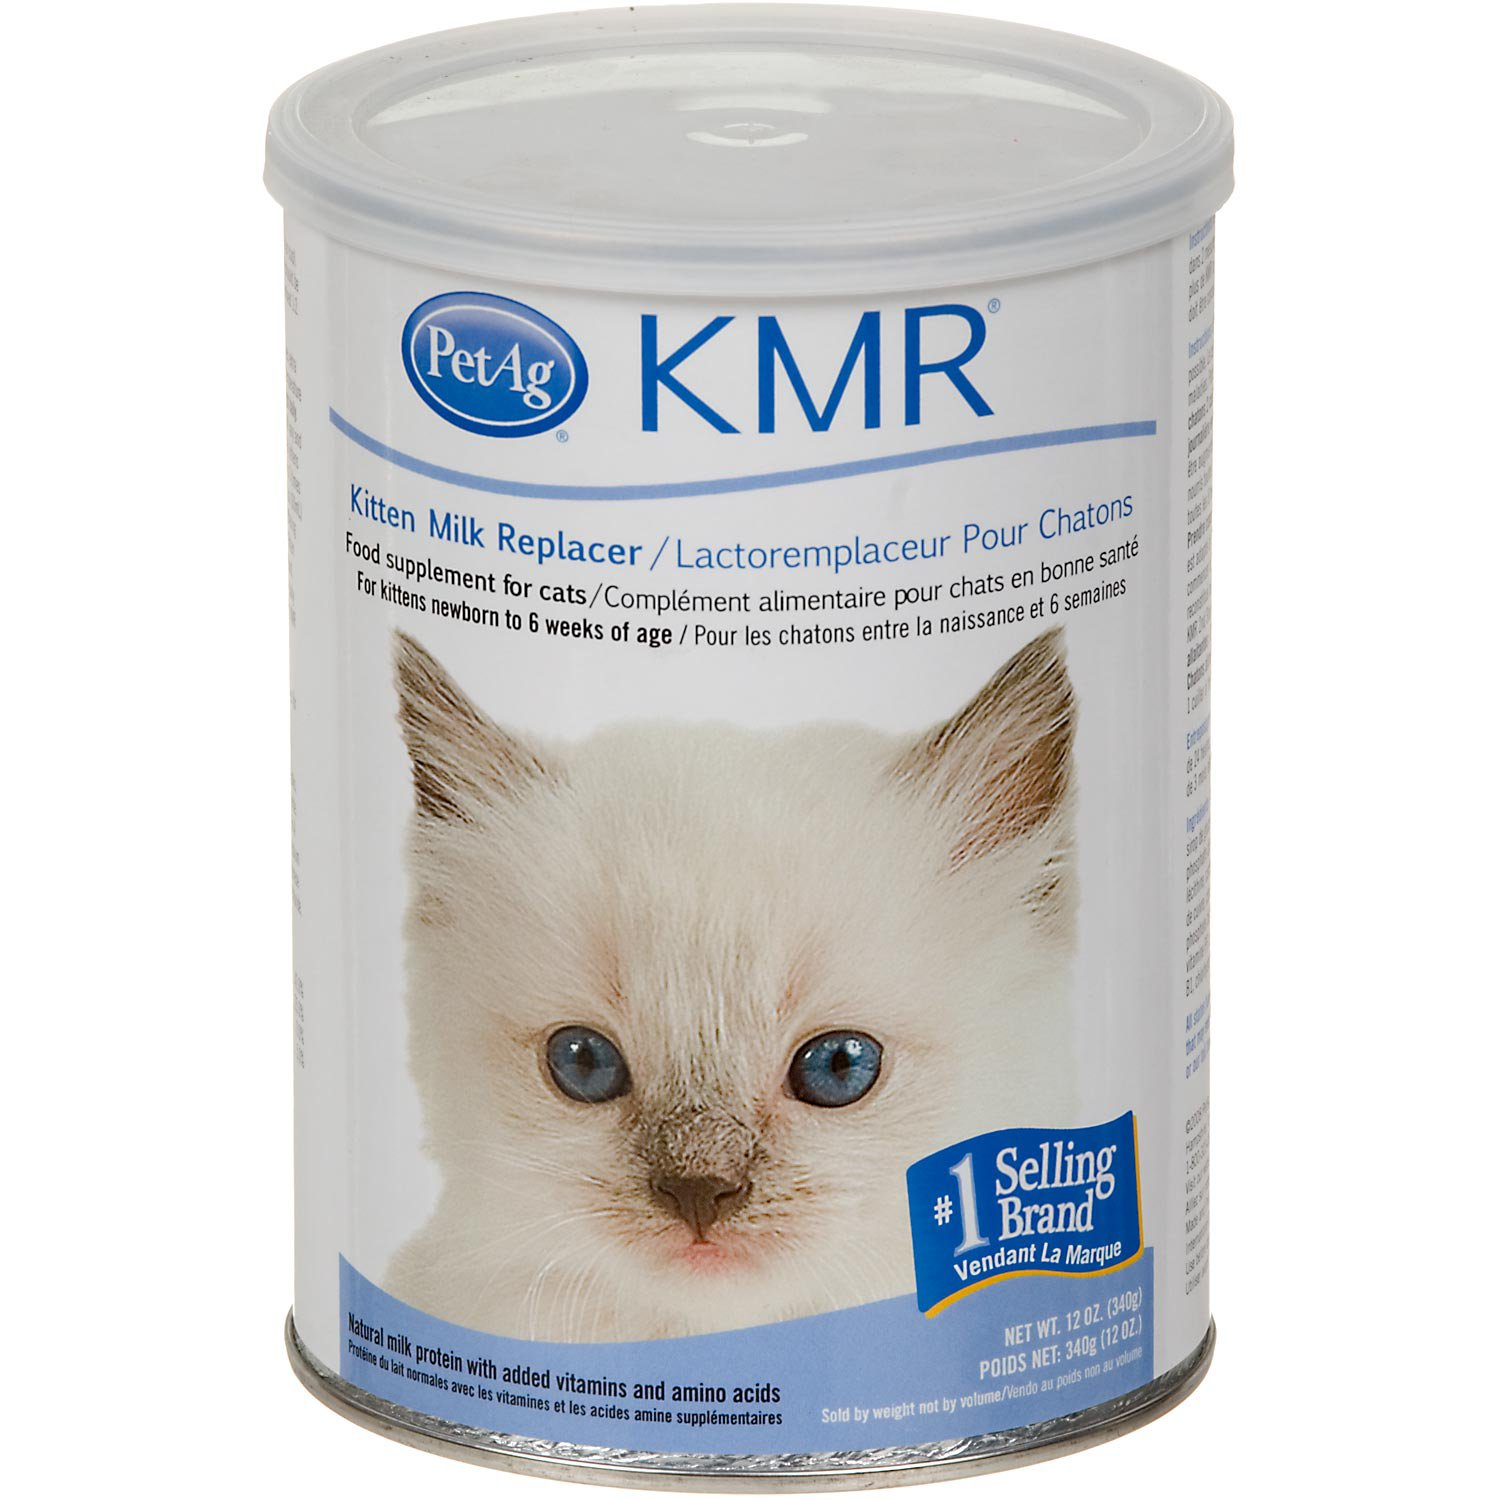 KMR Kitten Milk Re placer - 170 g